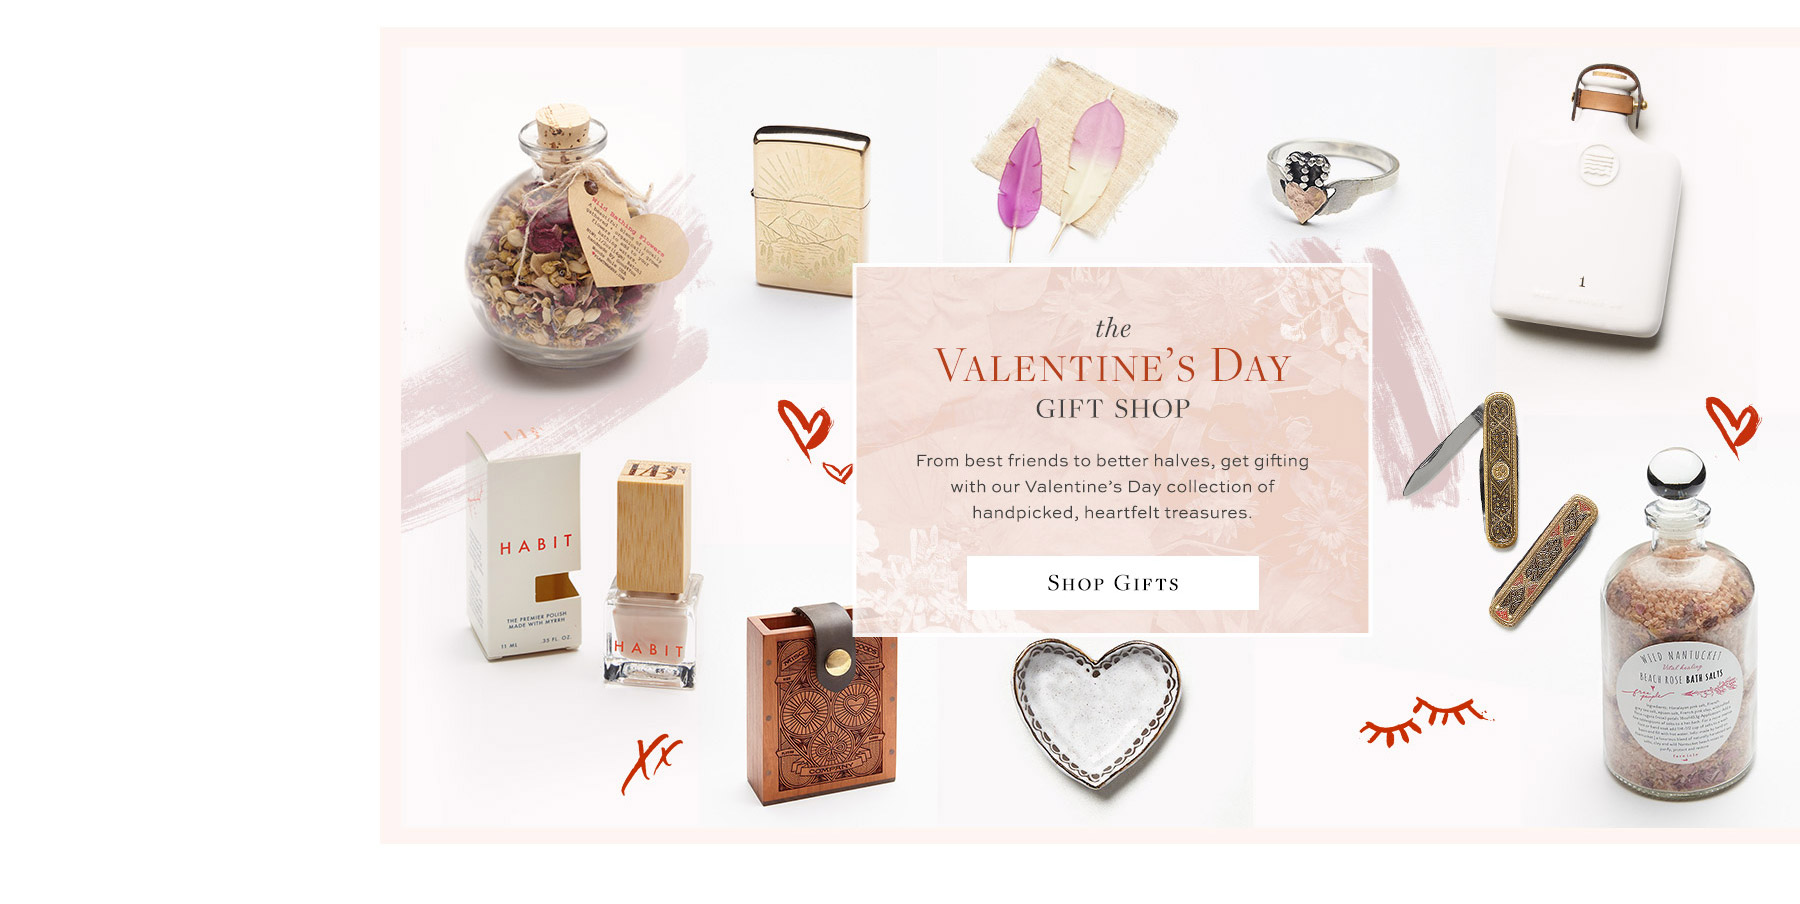 Shop the Gift Shop at Free People